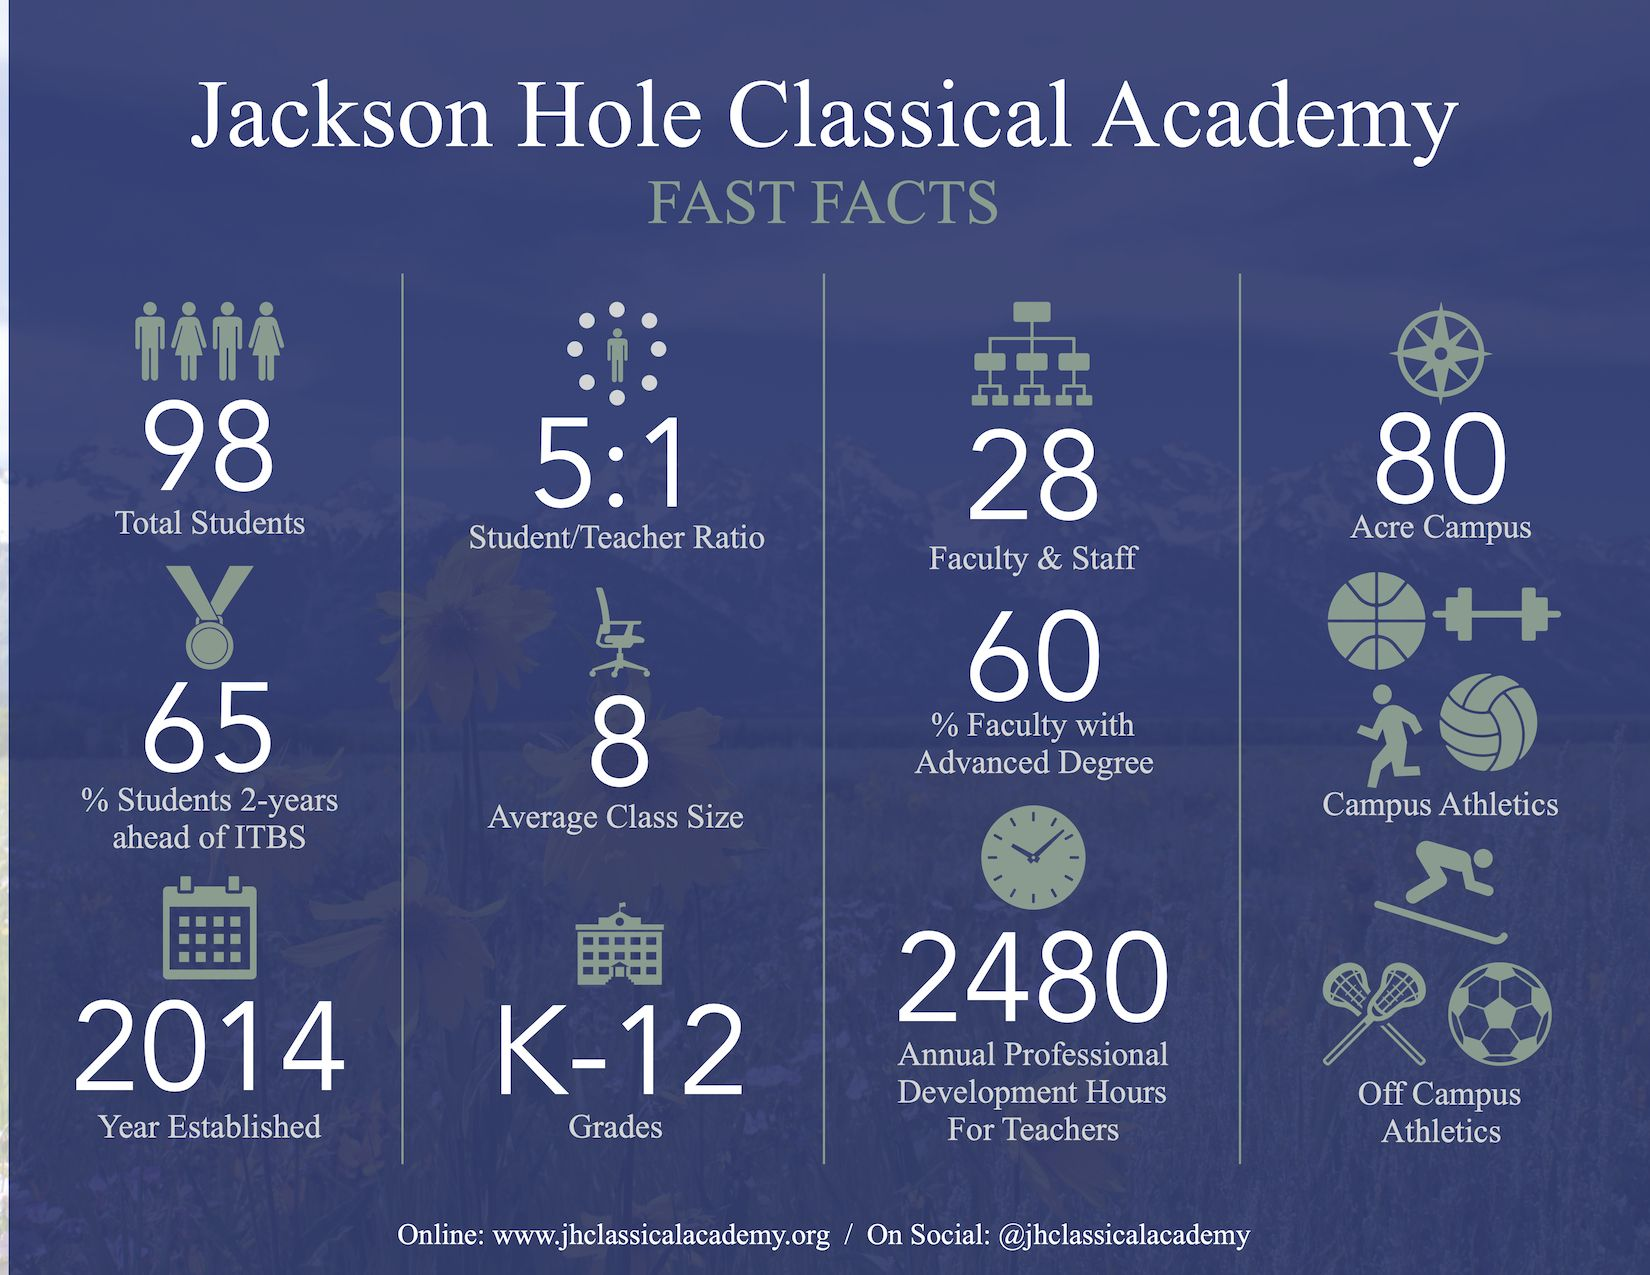 JHCA Fast Facts